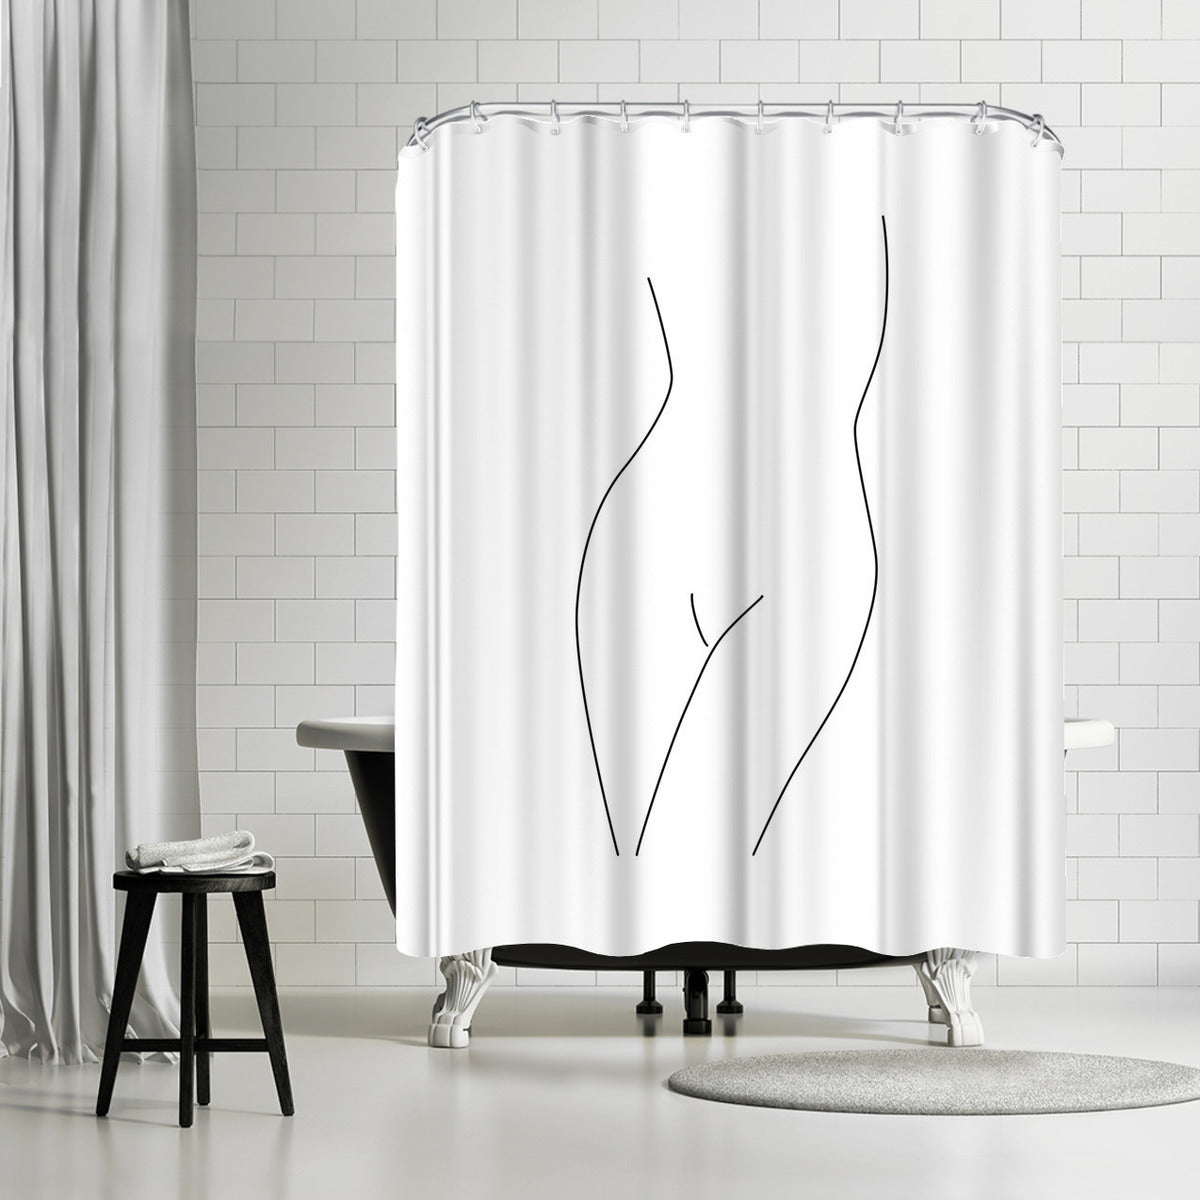 Simple Nude by Explicit Design Shower Curtain - Shower Curtain - Americanflat